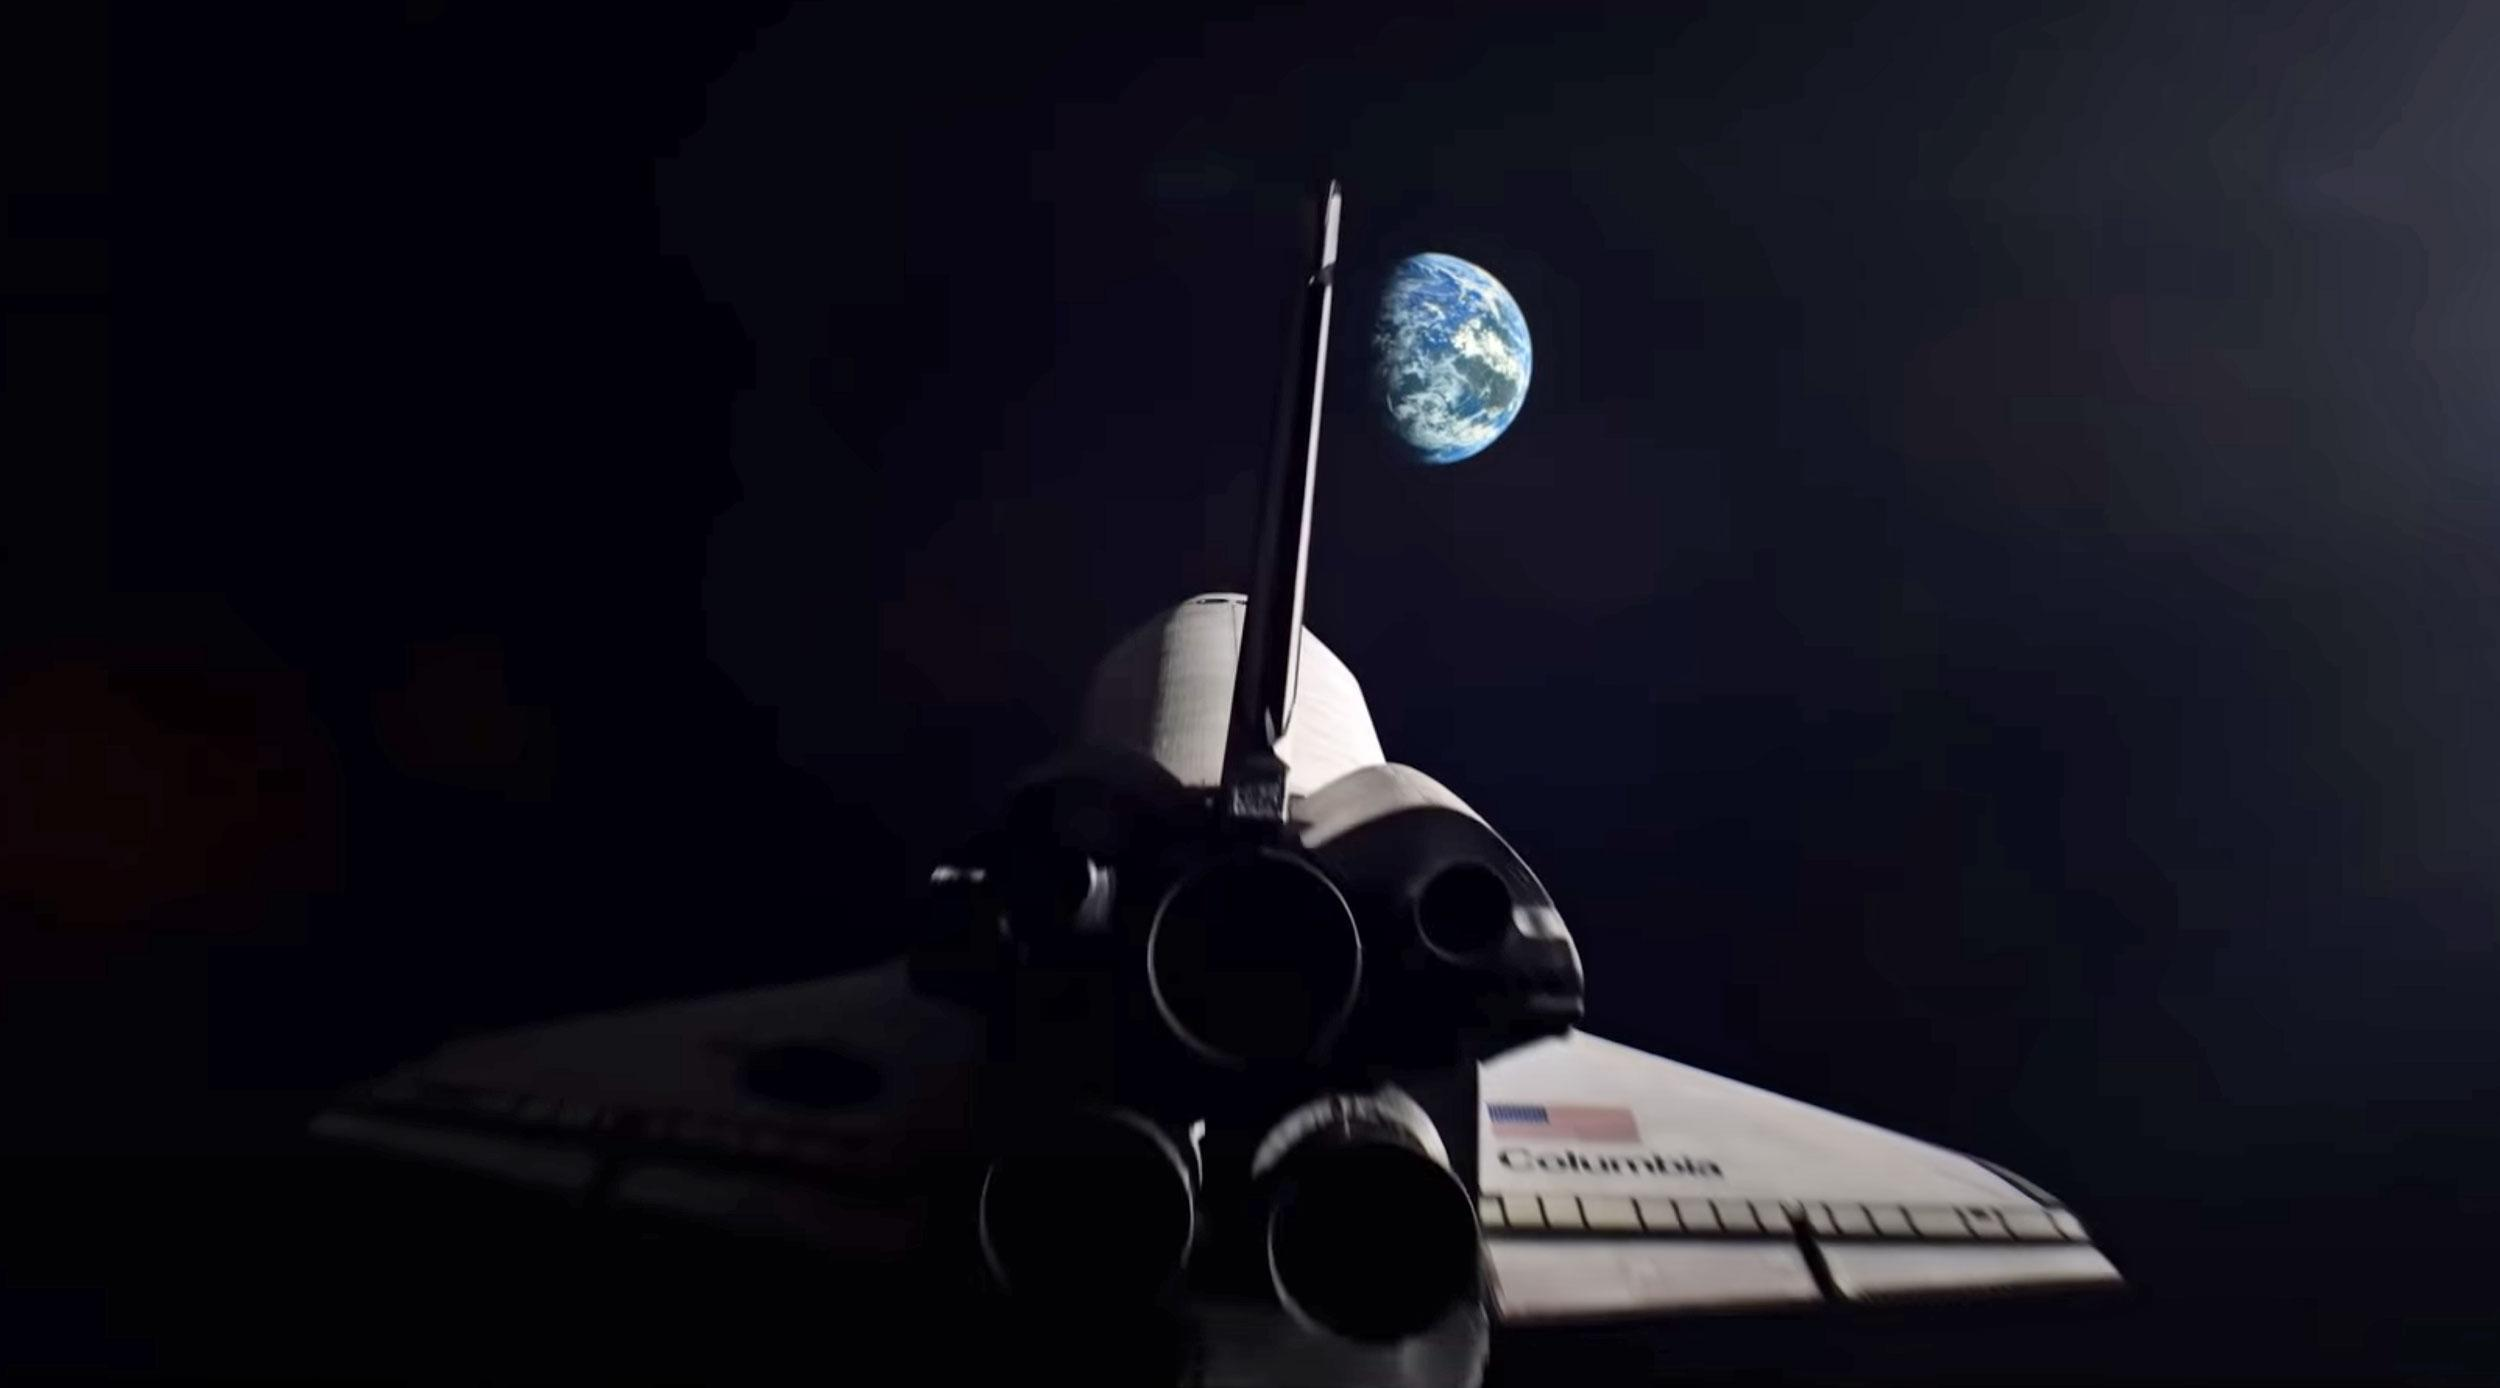 'For All Mankind' season 2 teaser introduces the Space Shuttle | Engadget